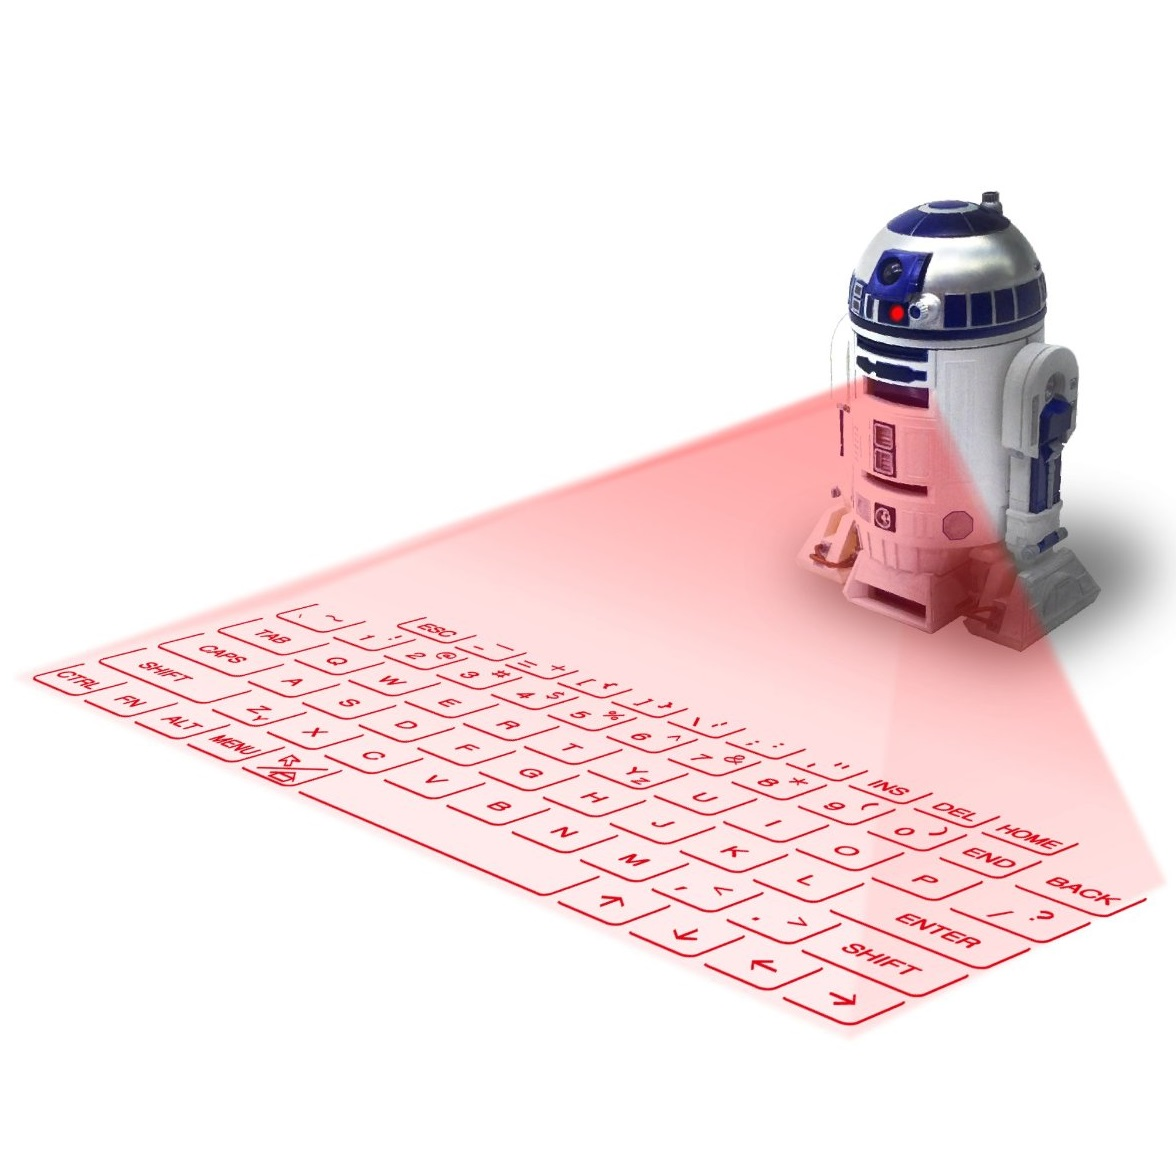 R2-D2 Virtual Keyboard